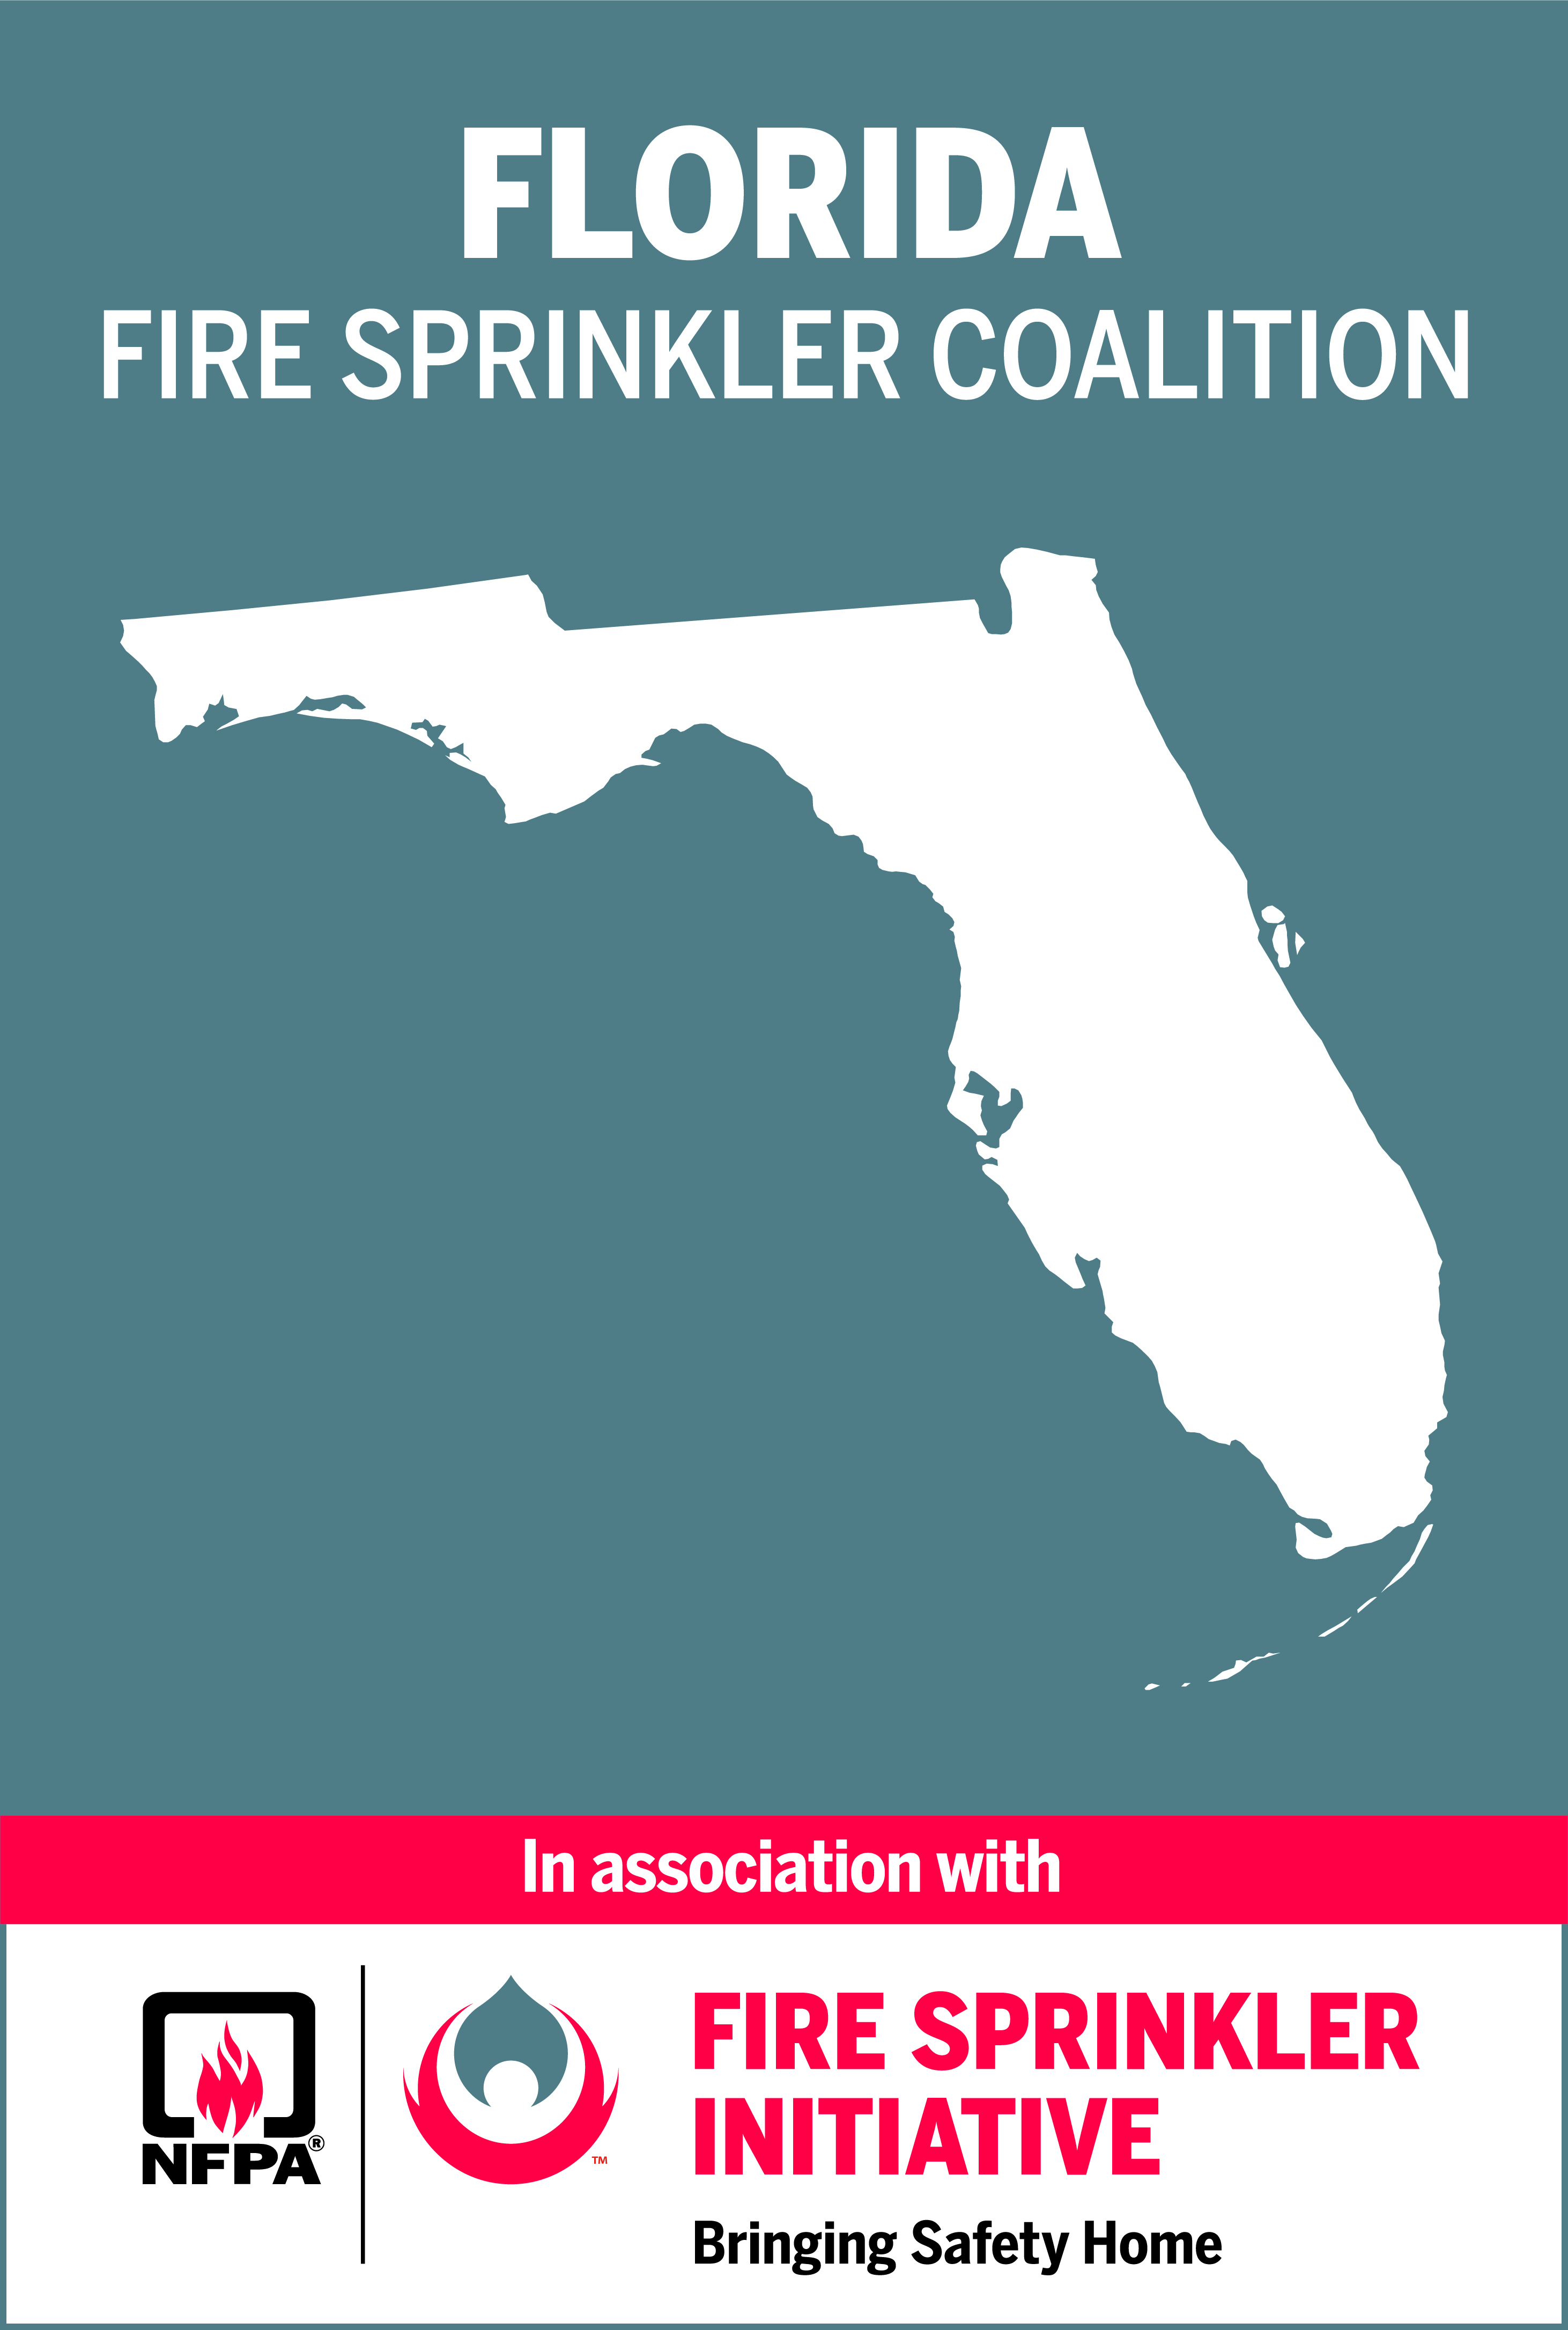 Florida Fire Map 2017.Nfpa S Fire Sprinkler Initiative Florida Fire Sprinkler Coalition